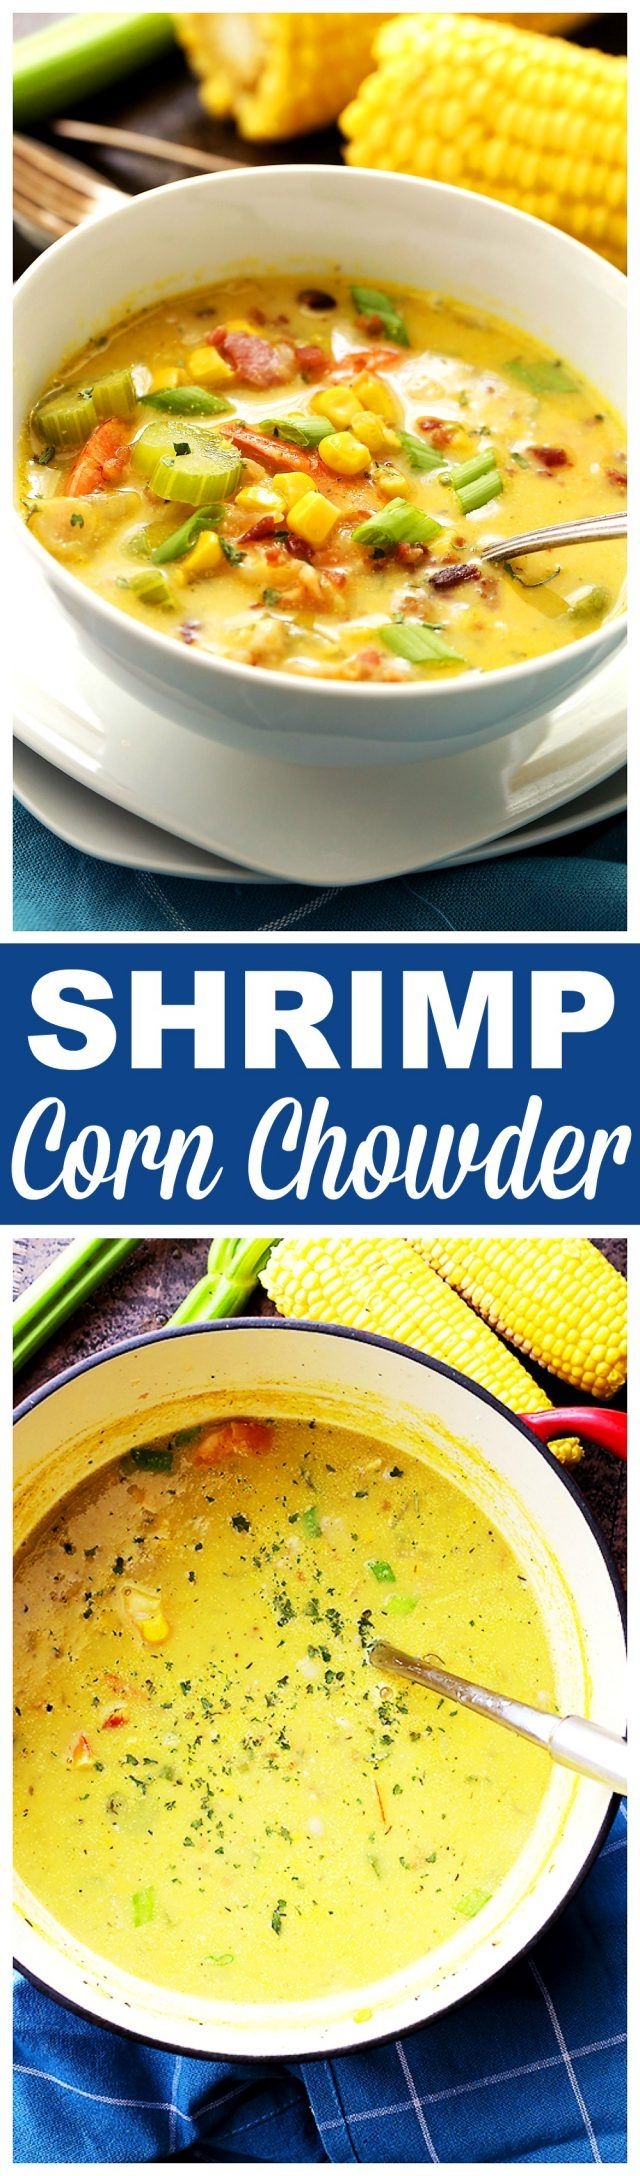 Shrimp Corn Chowder - Loaded with fresh corn, bacon and shrimp, this smoky sweet…